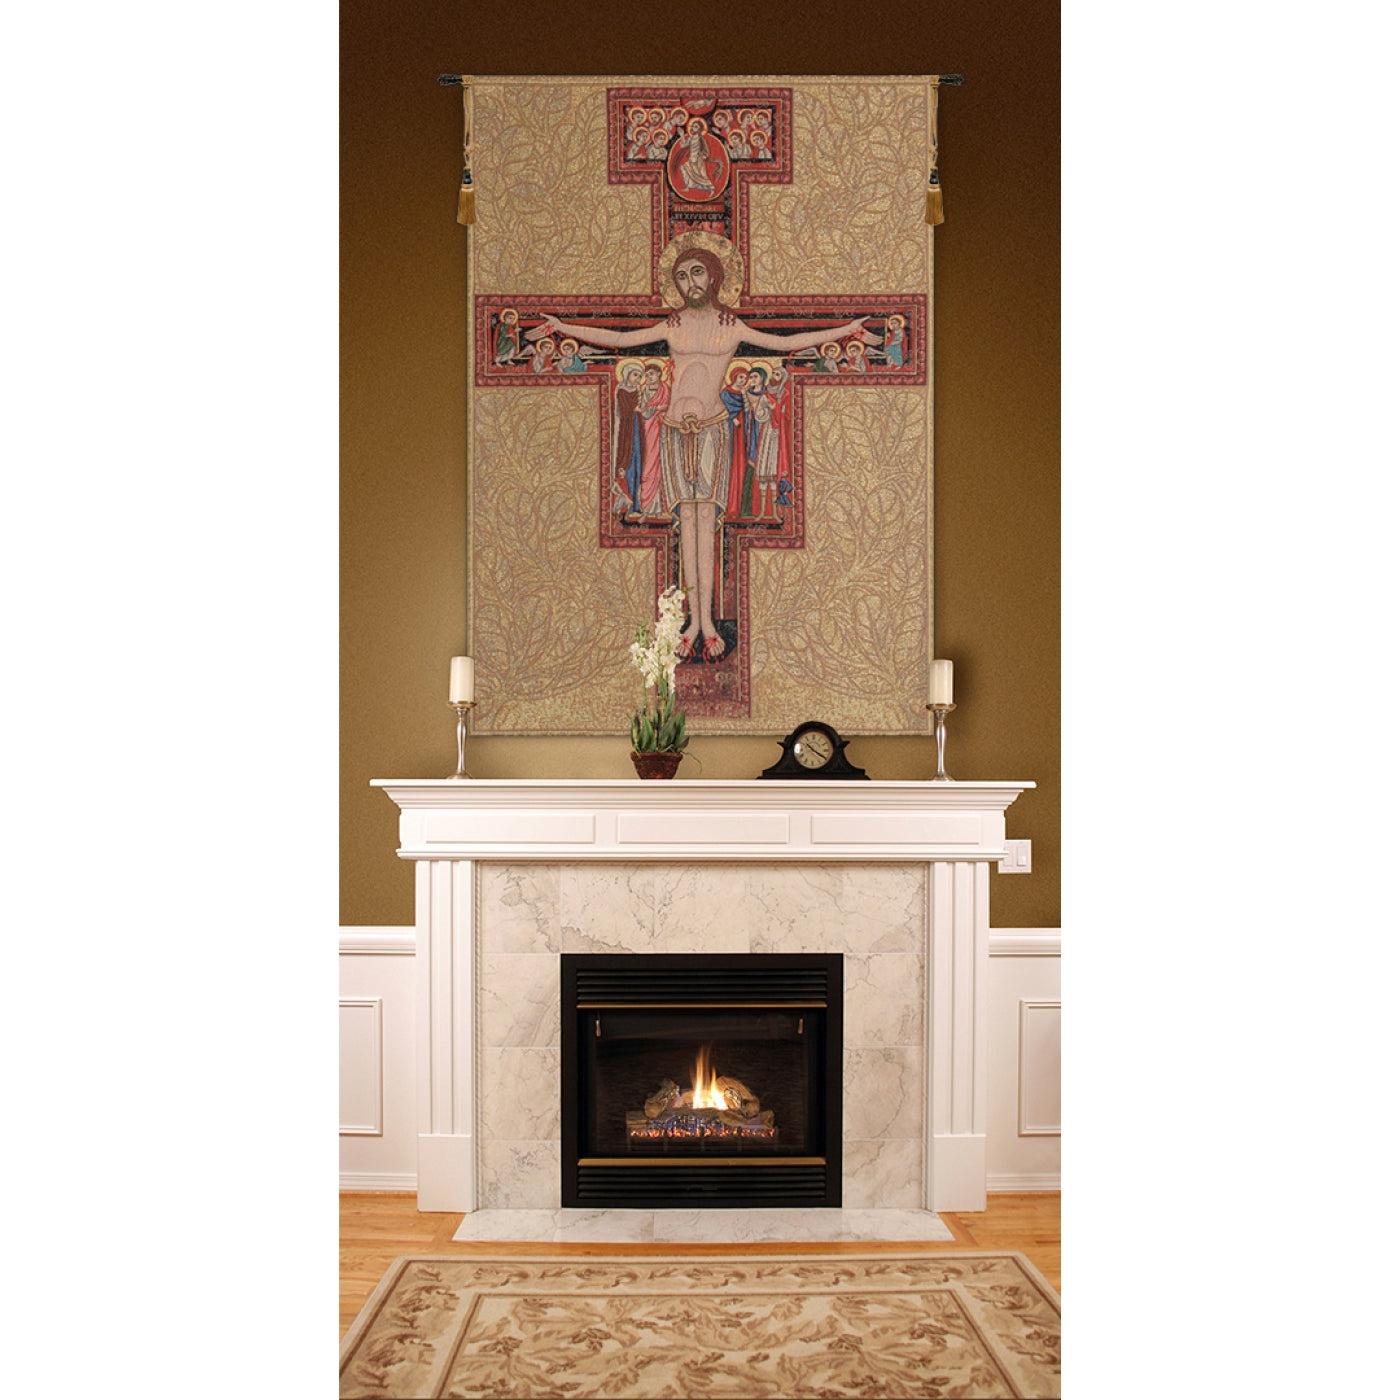 Gold Religious Cross Woven Wall Art